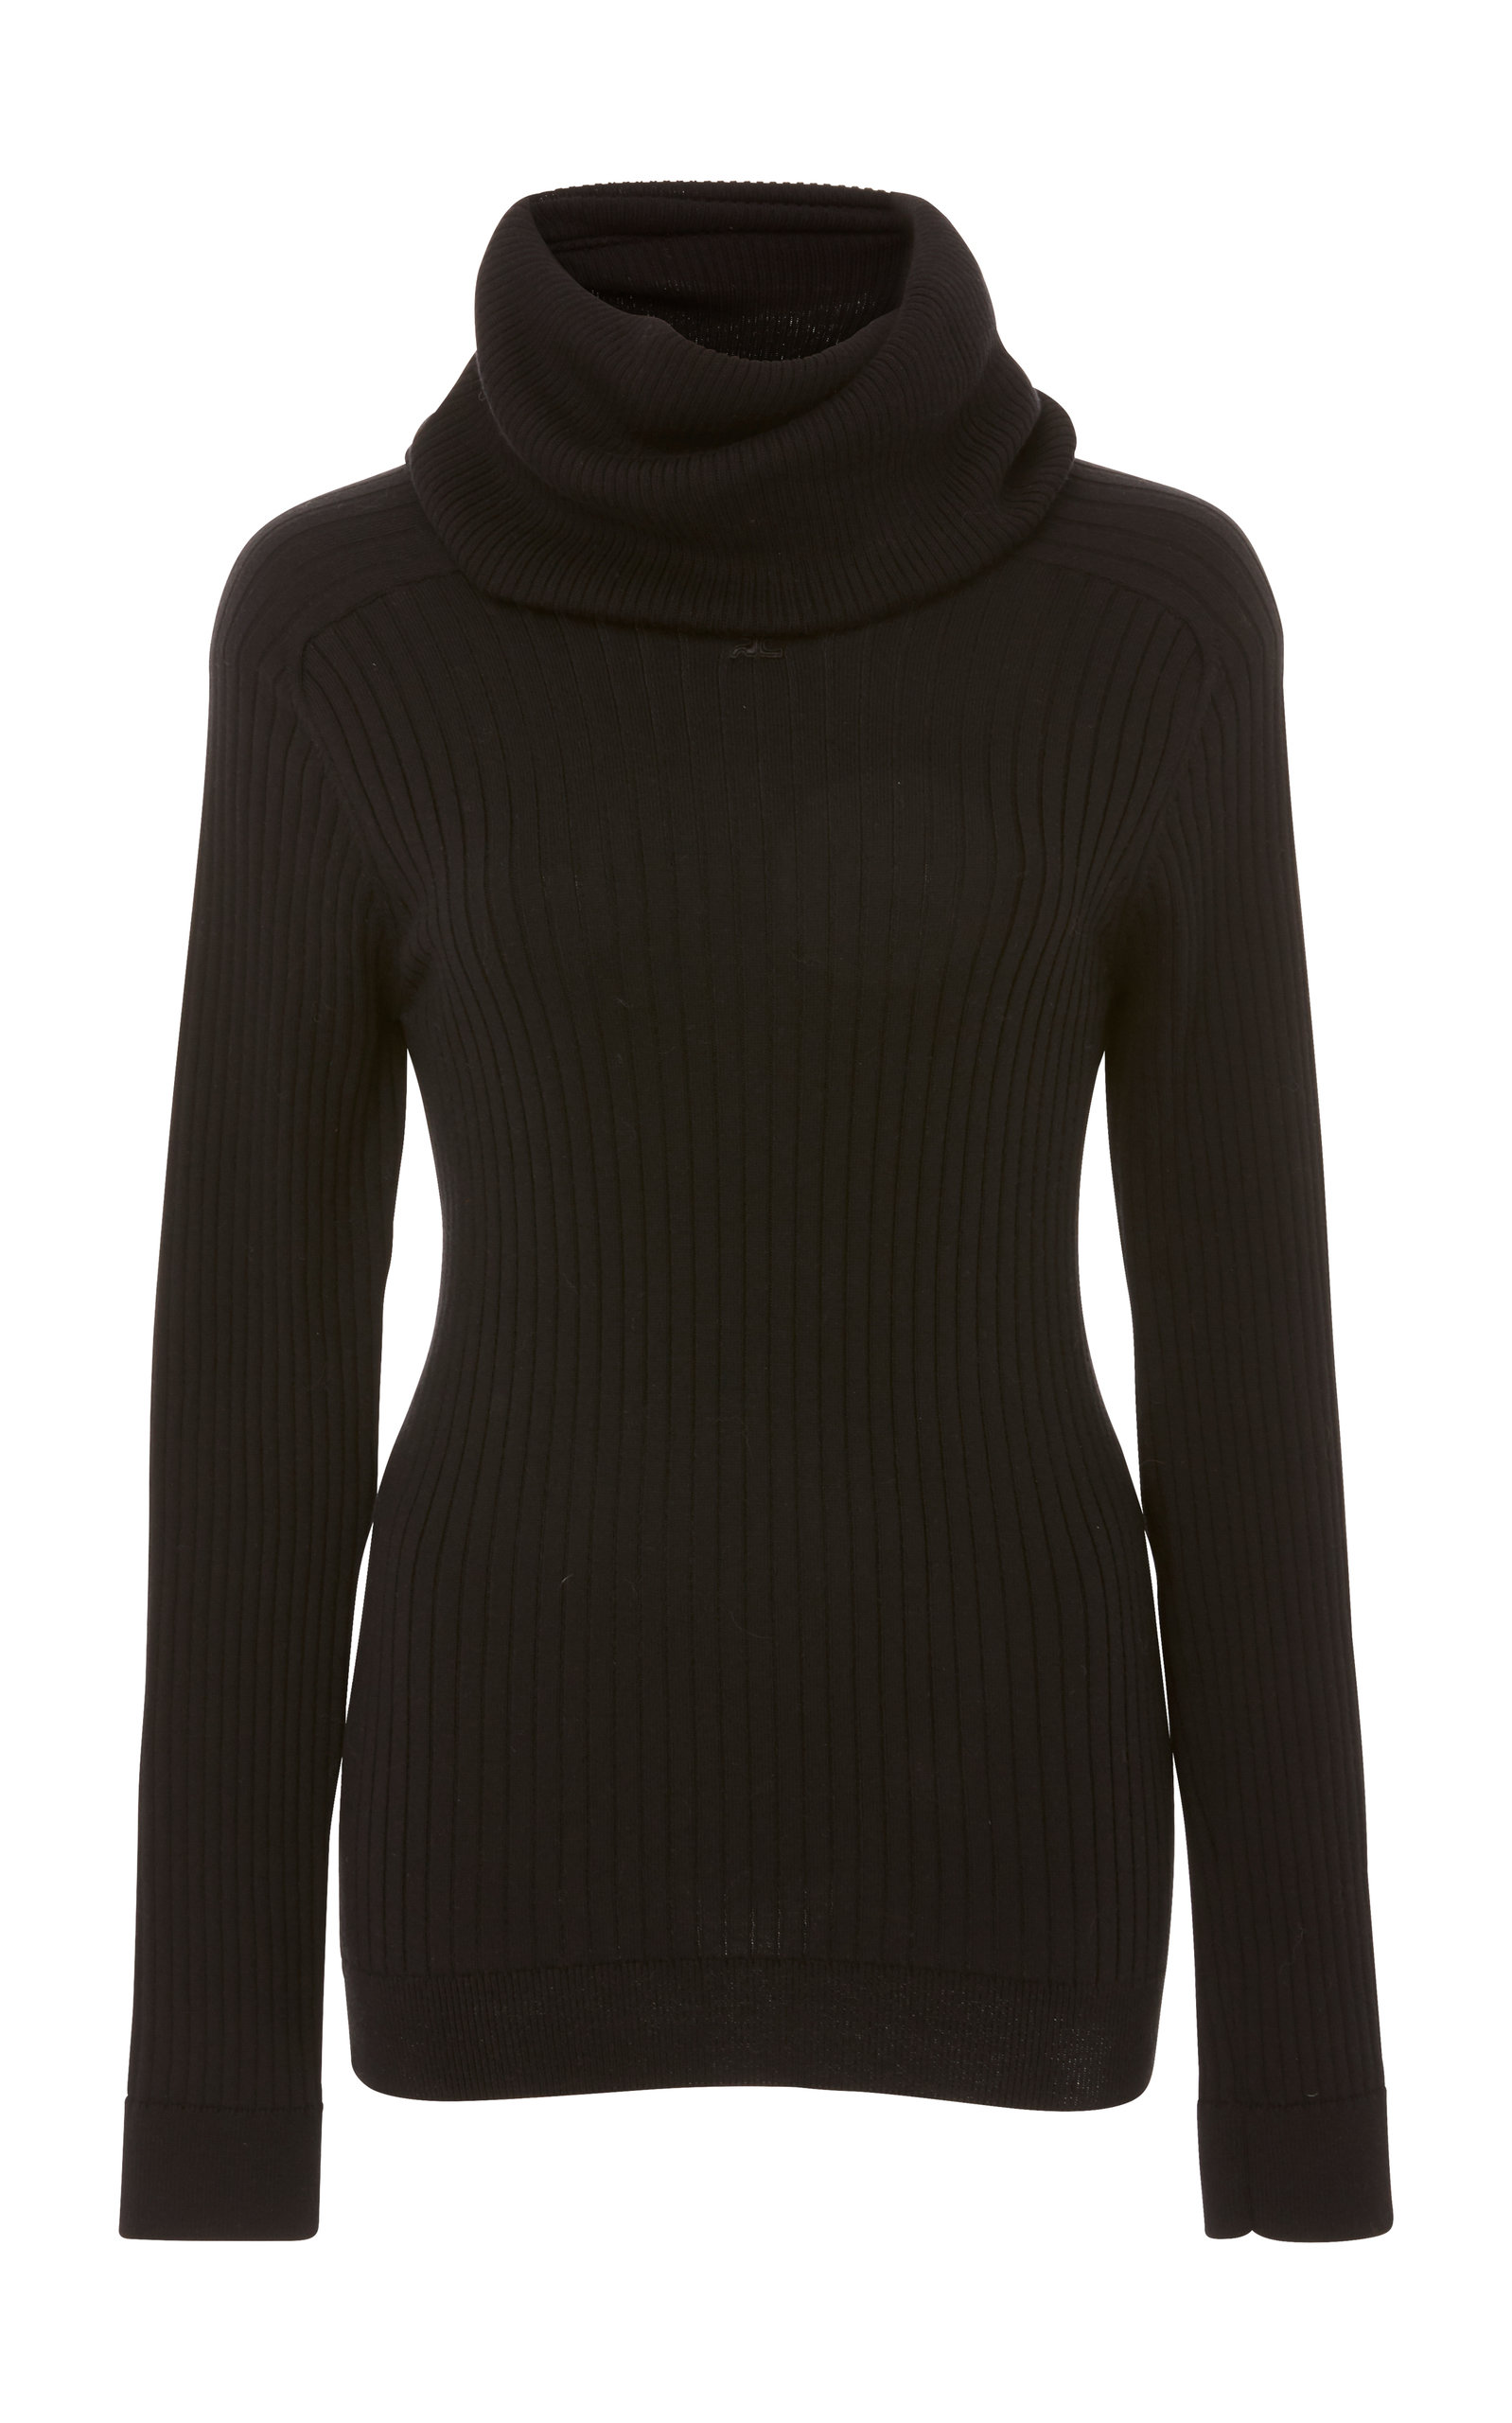 COURRÈGES Ribbed Cotton And Cashmere-Blend Turtleneck Sweater in Black